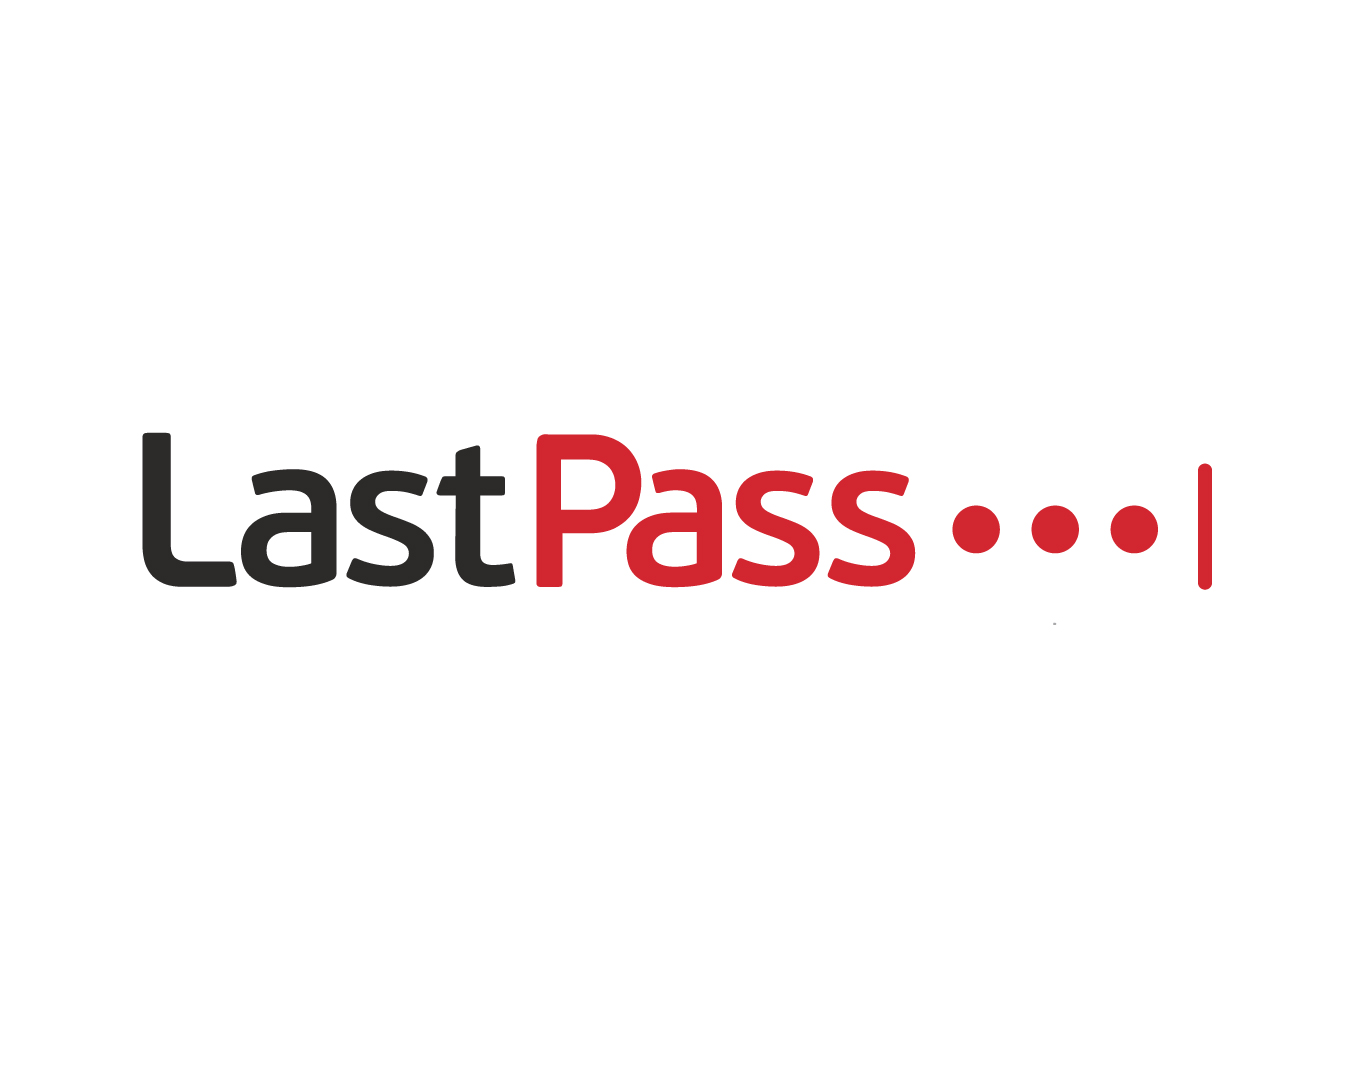 Product picture of LastPass